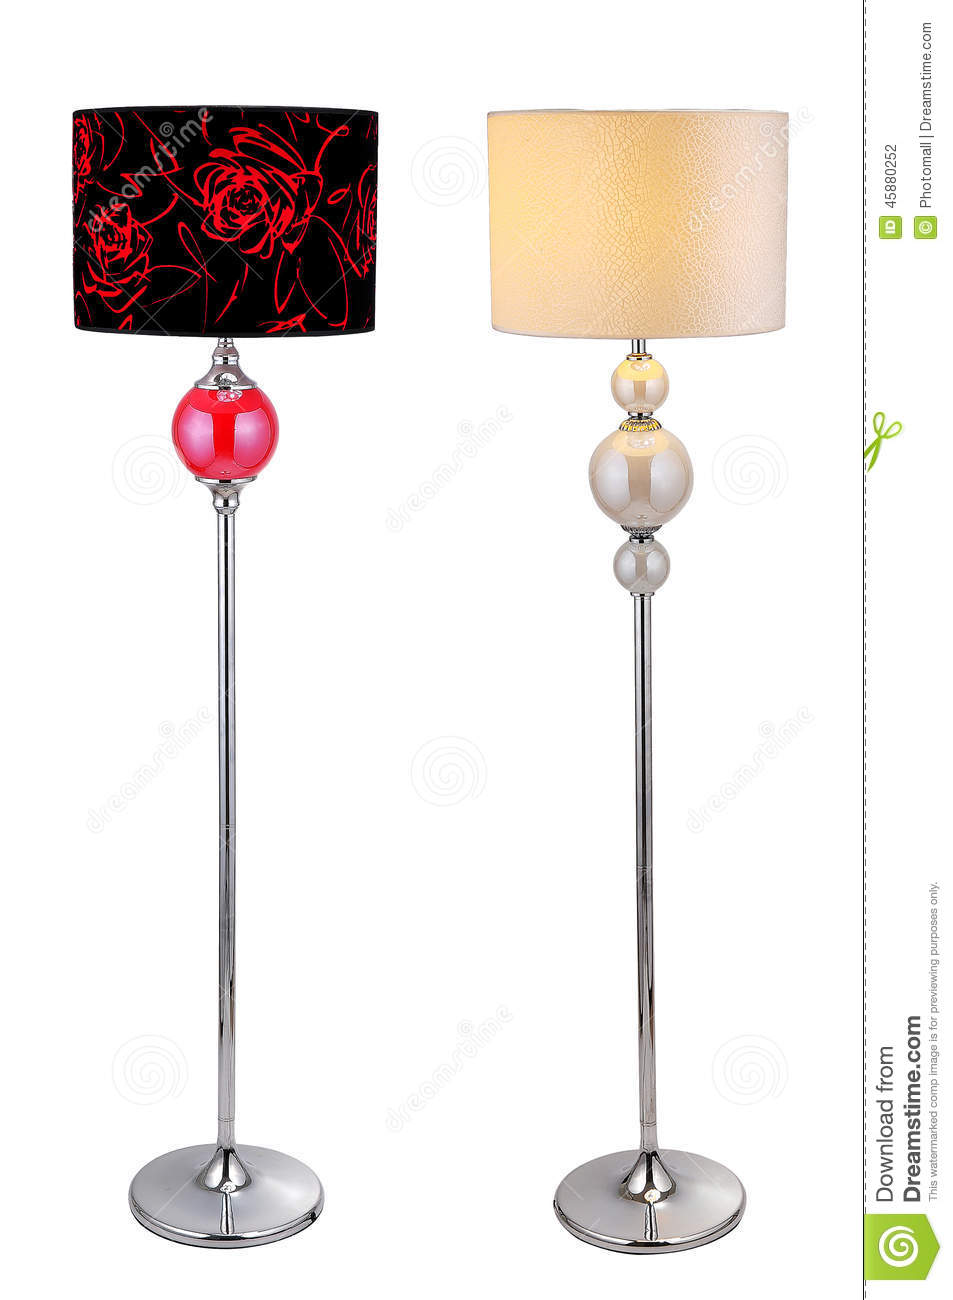 Home Furnishing Decoration Floor Lamp Lighting Light Stock Photo Image Of Carpet Classic 45880252